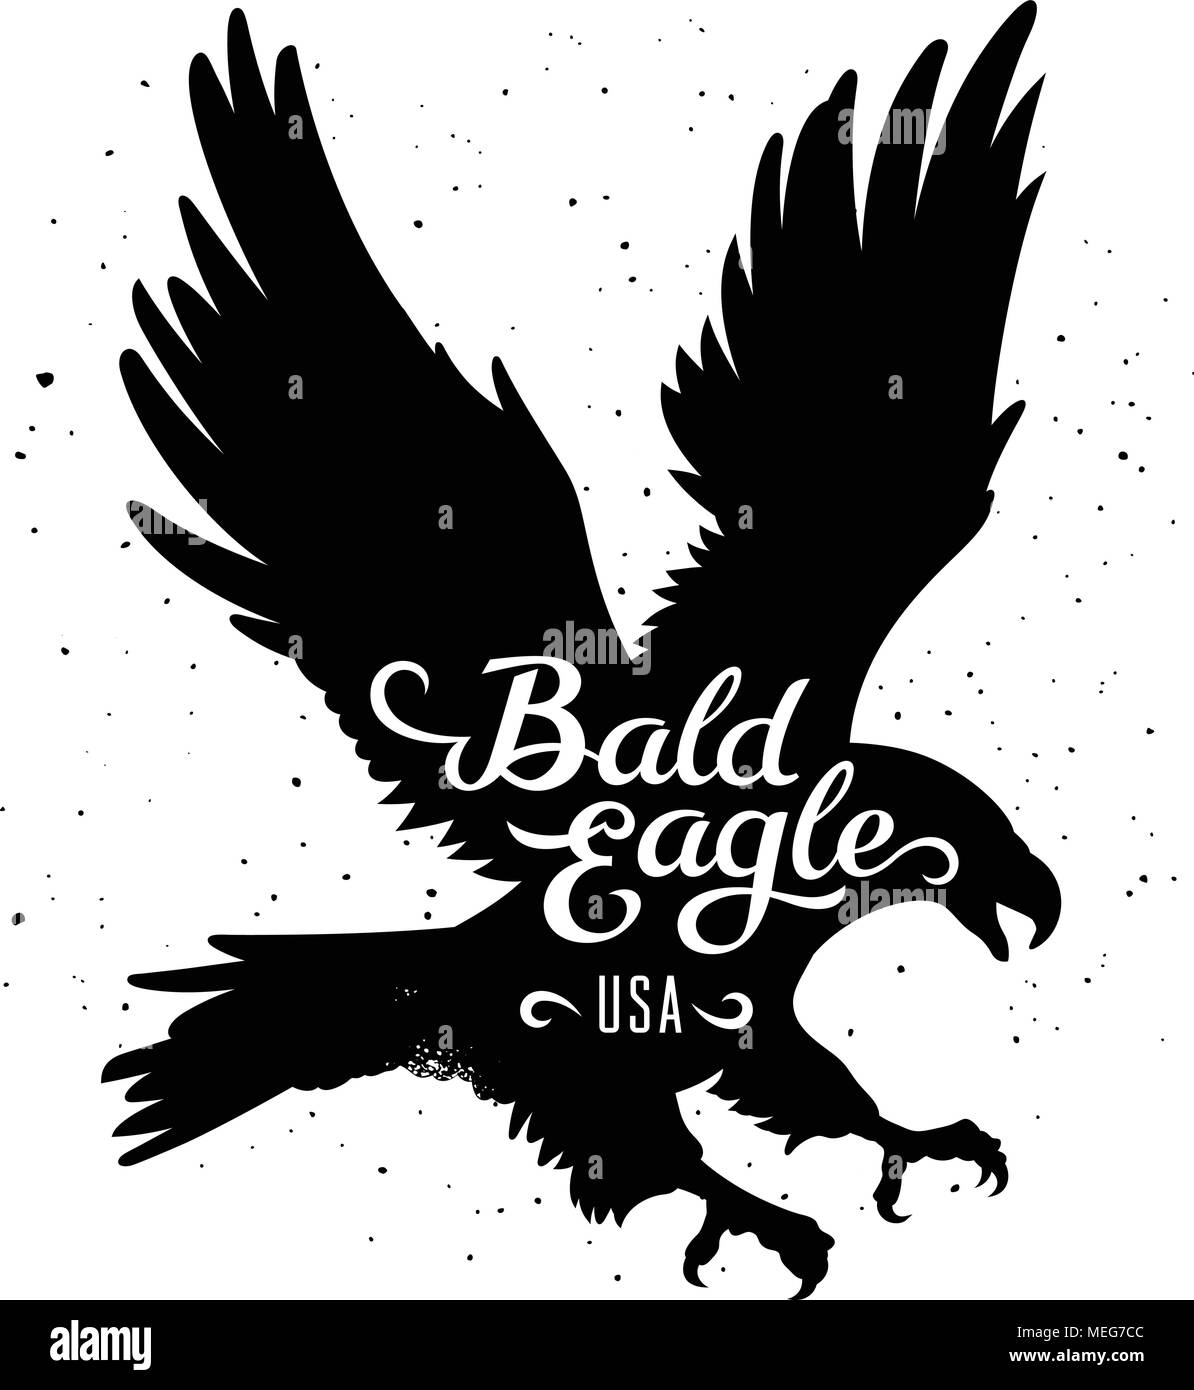 Bald Eagle silhouette and handwritten inscription 'Bald Eagle USA' / Vector illustration in hipster style / T-shirt graphics - Stock Image